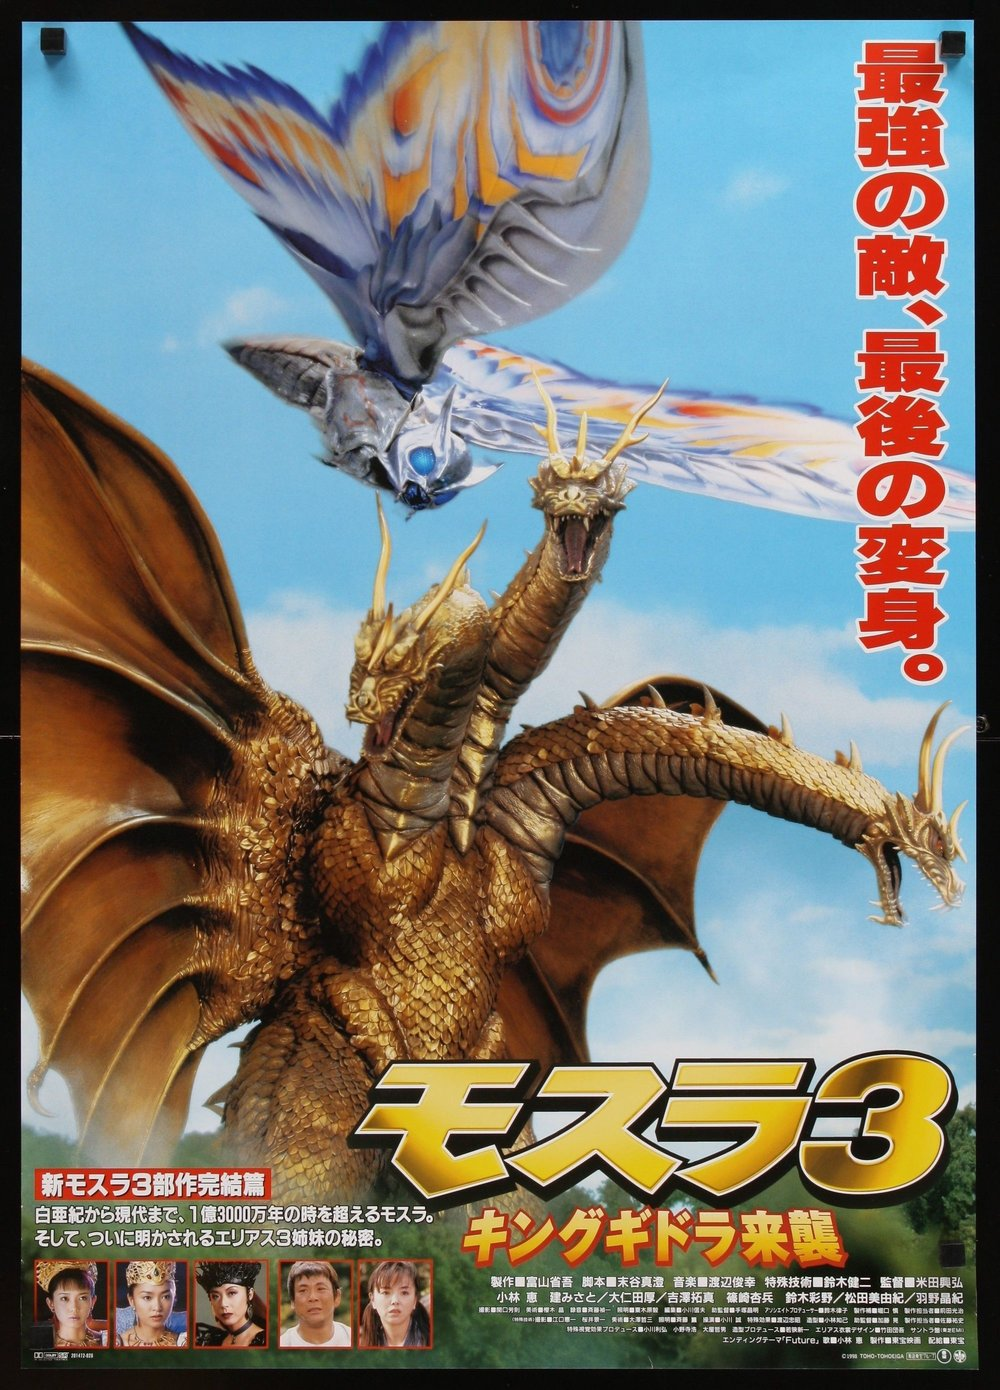 Rebirth-of-mothra-3-japanese-movie-poster-98-king-ghidora.jpg